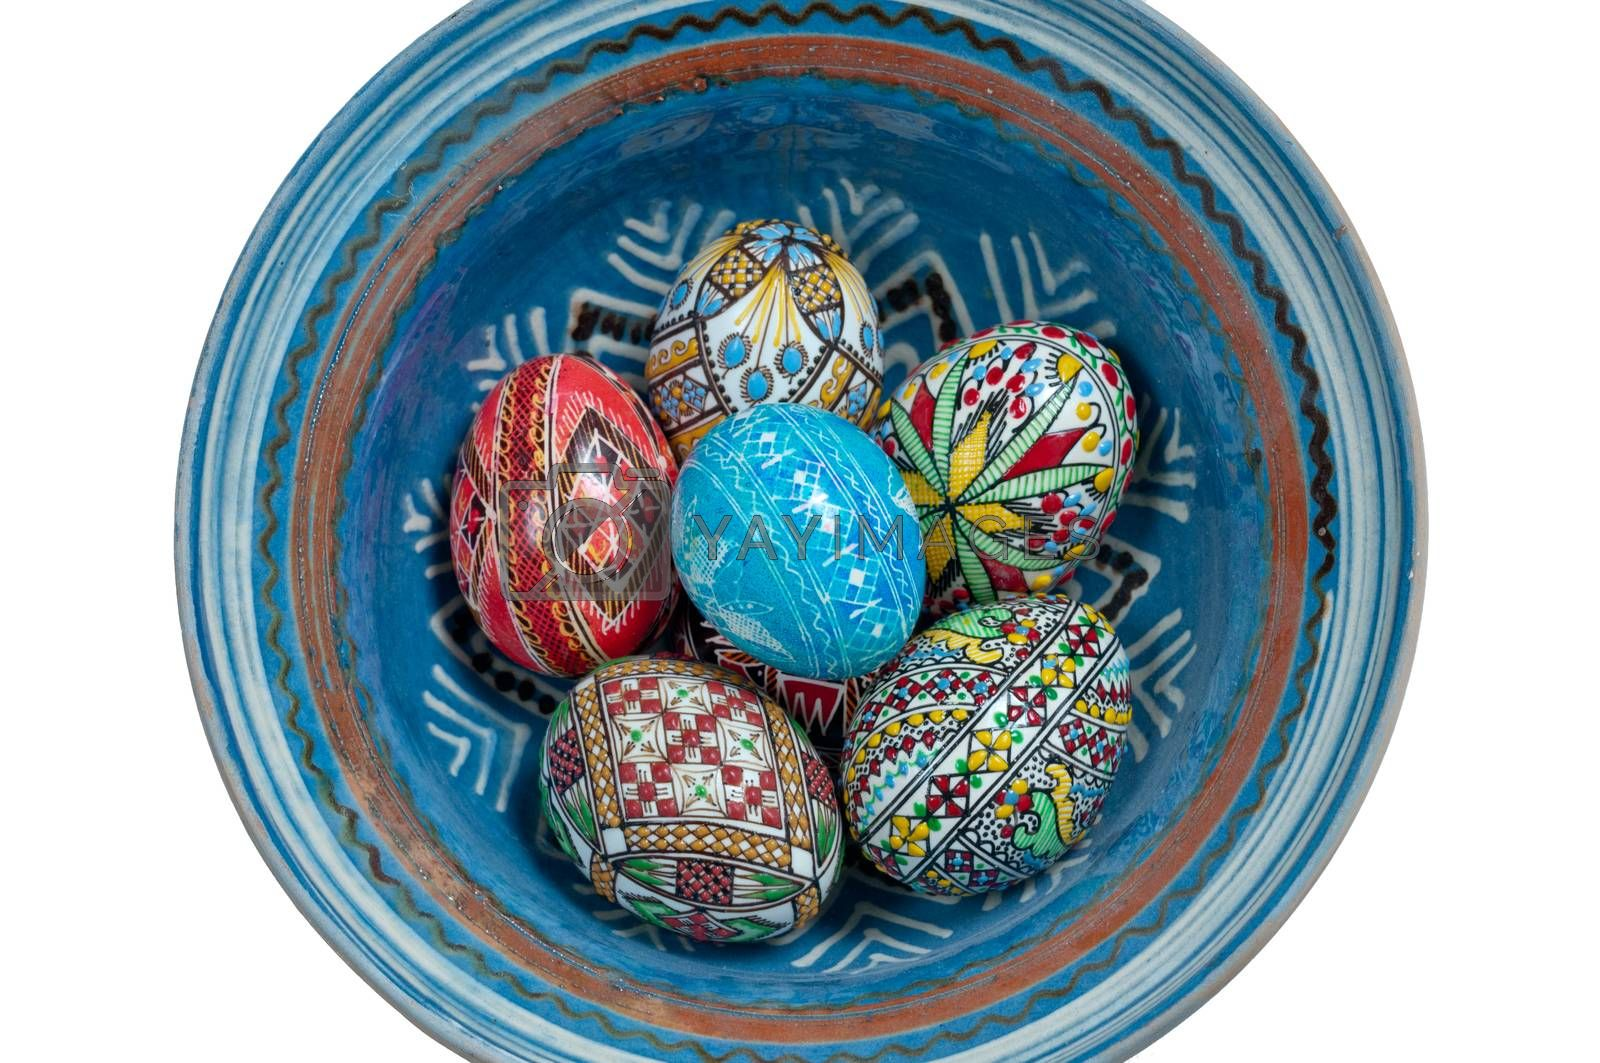 Set of Easter eggs painted in traditional Eastern European style with a floral/geometric design.